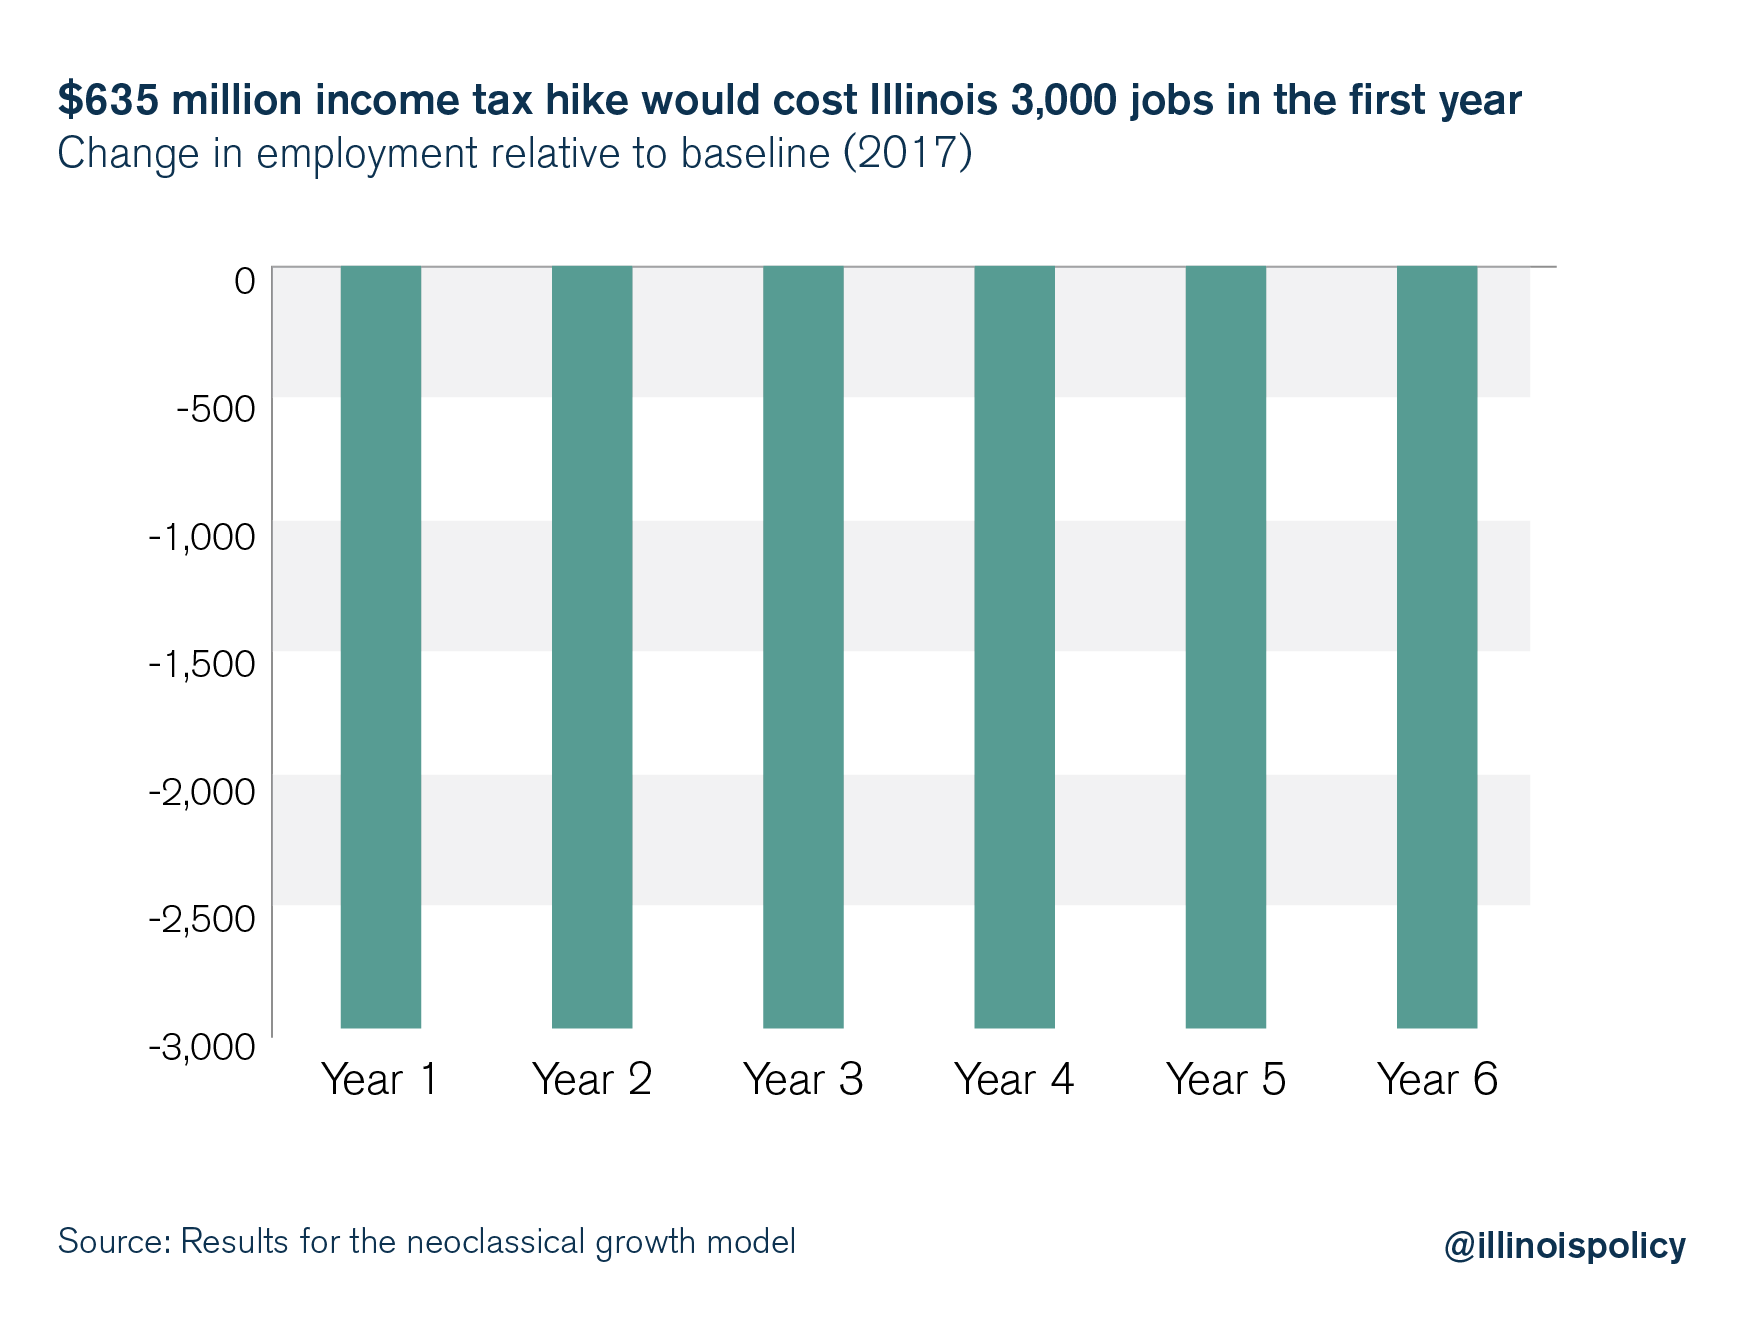 $635 million income tax hike would cost Illinois 3,000 jobs in the first year